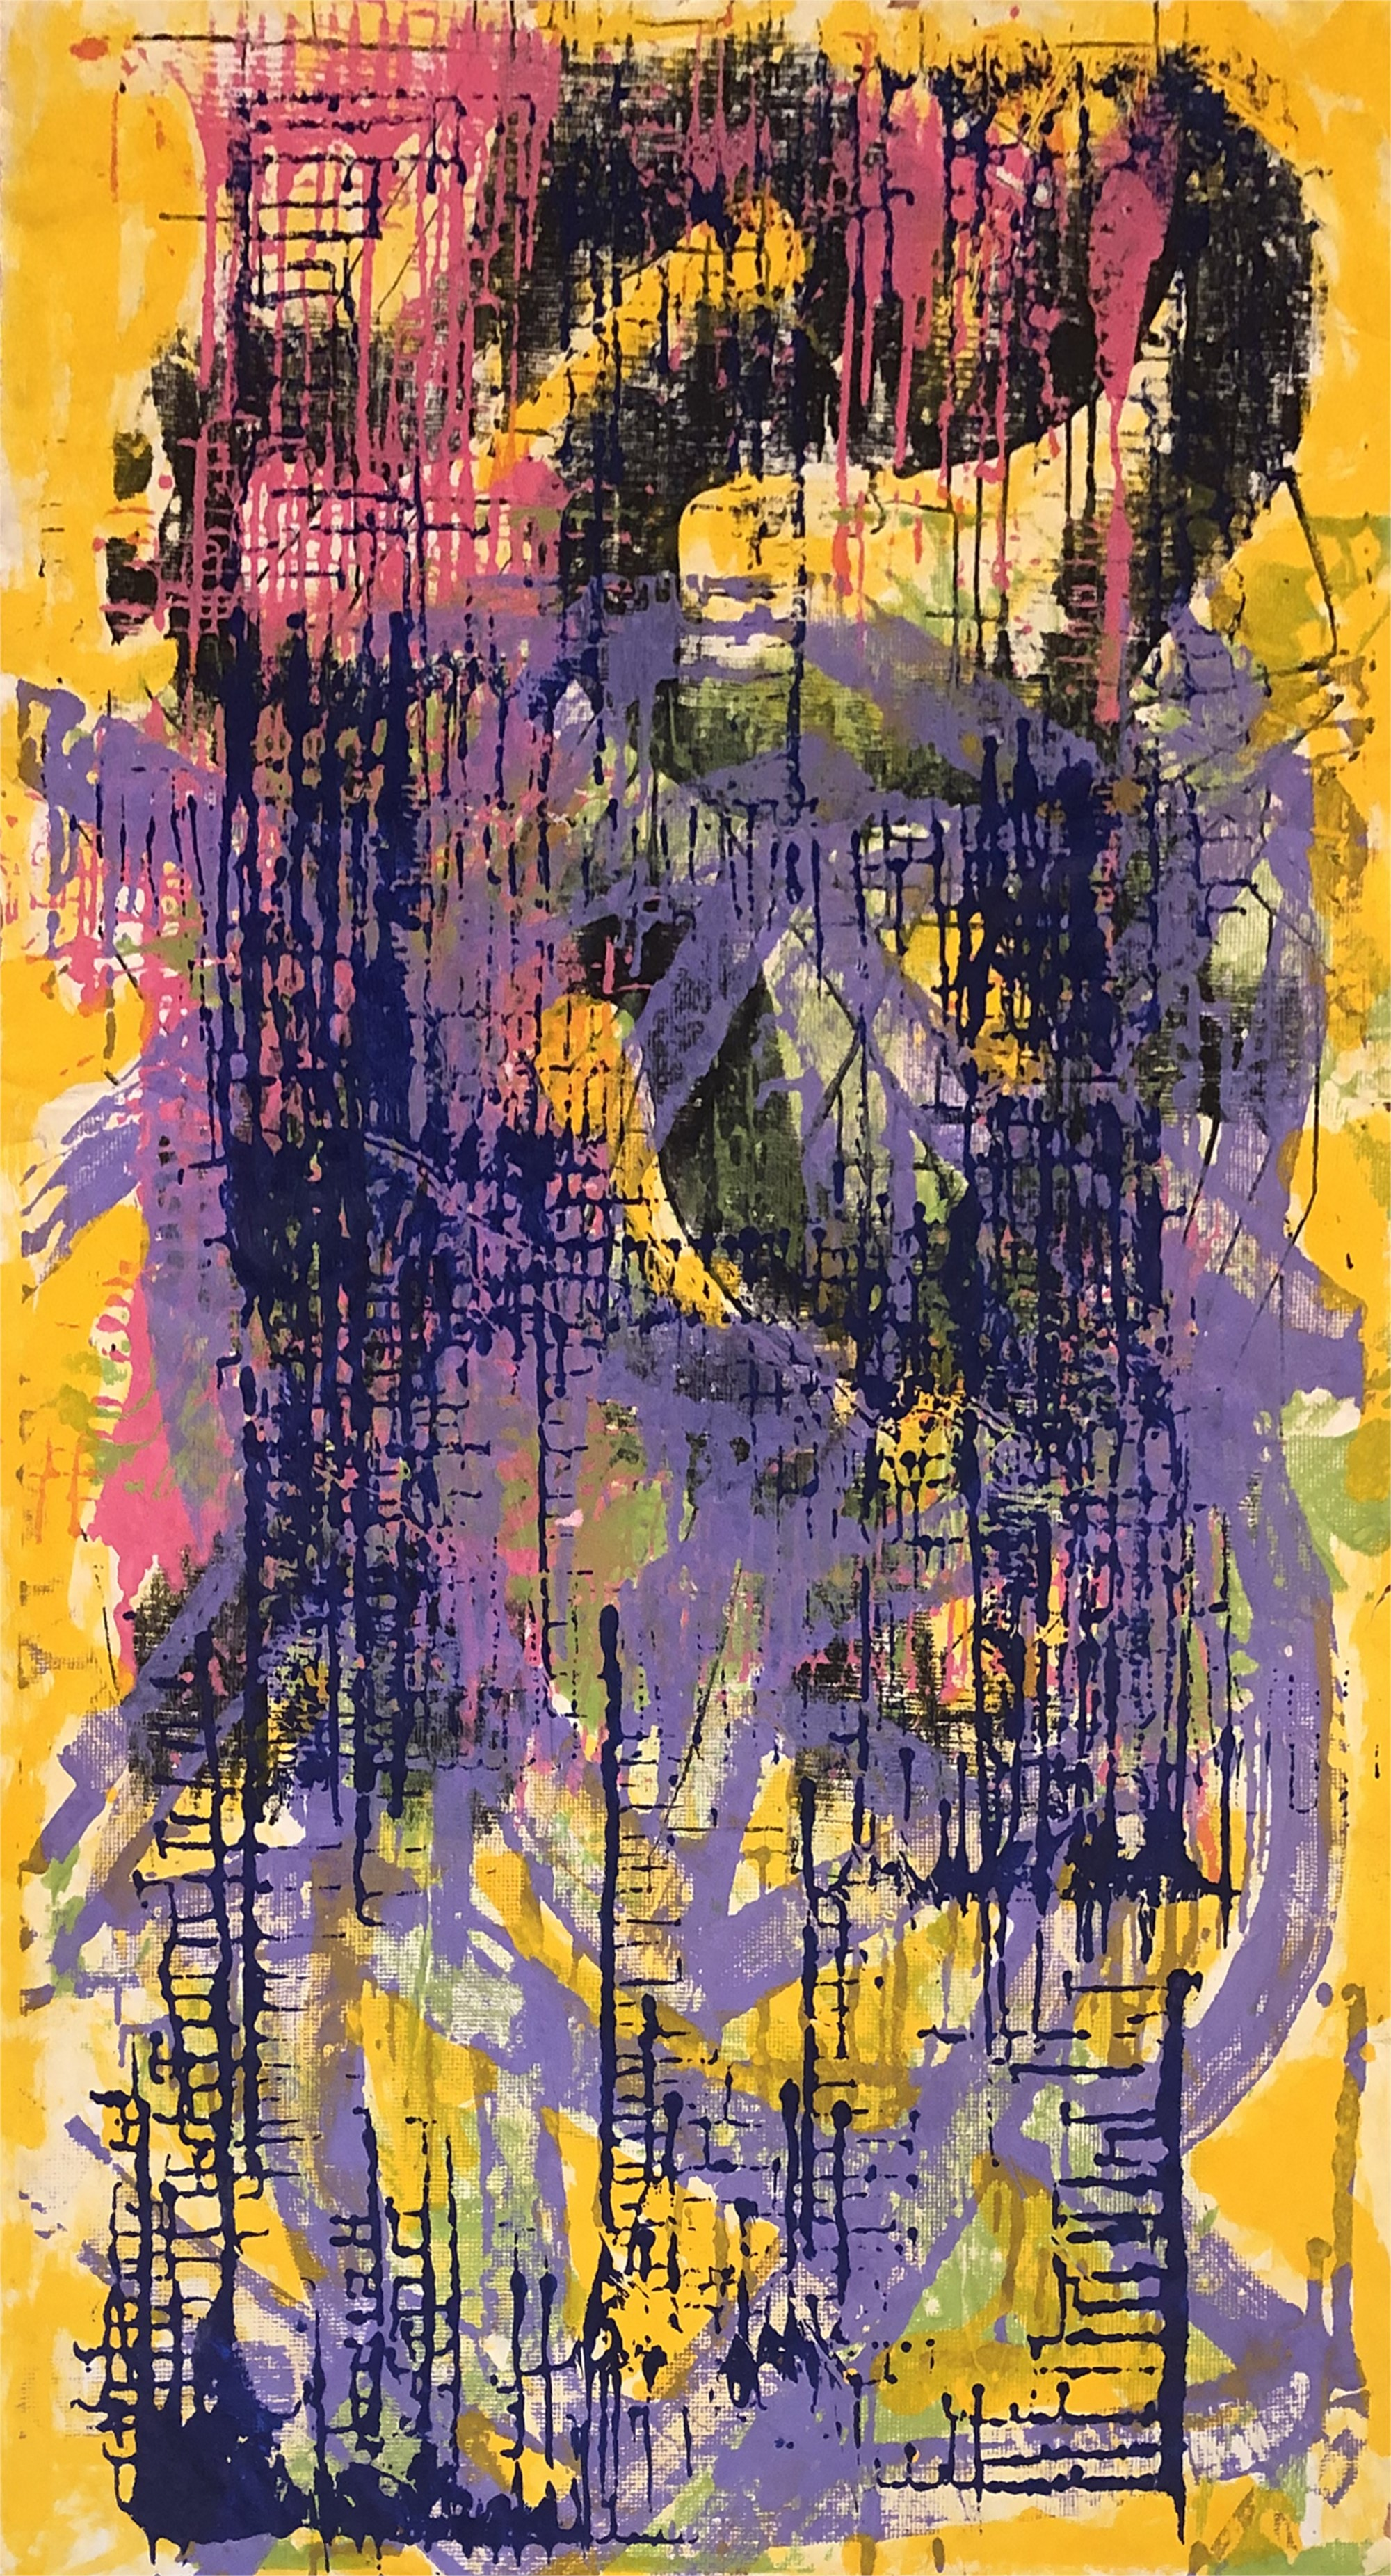 Untitled (yellow, blue, pink) by Ibsen Espada